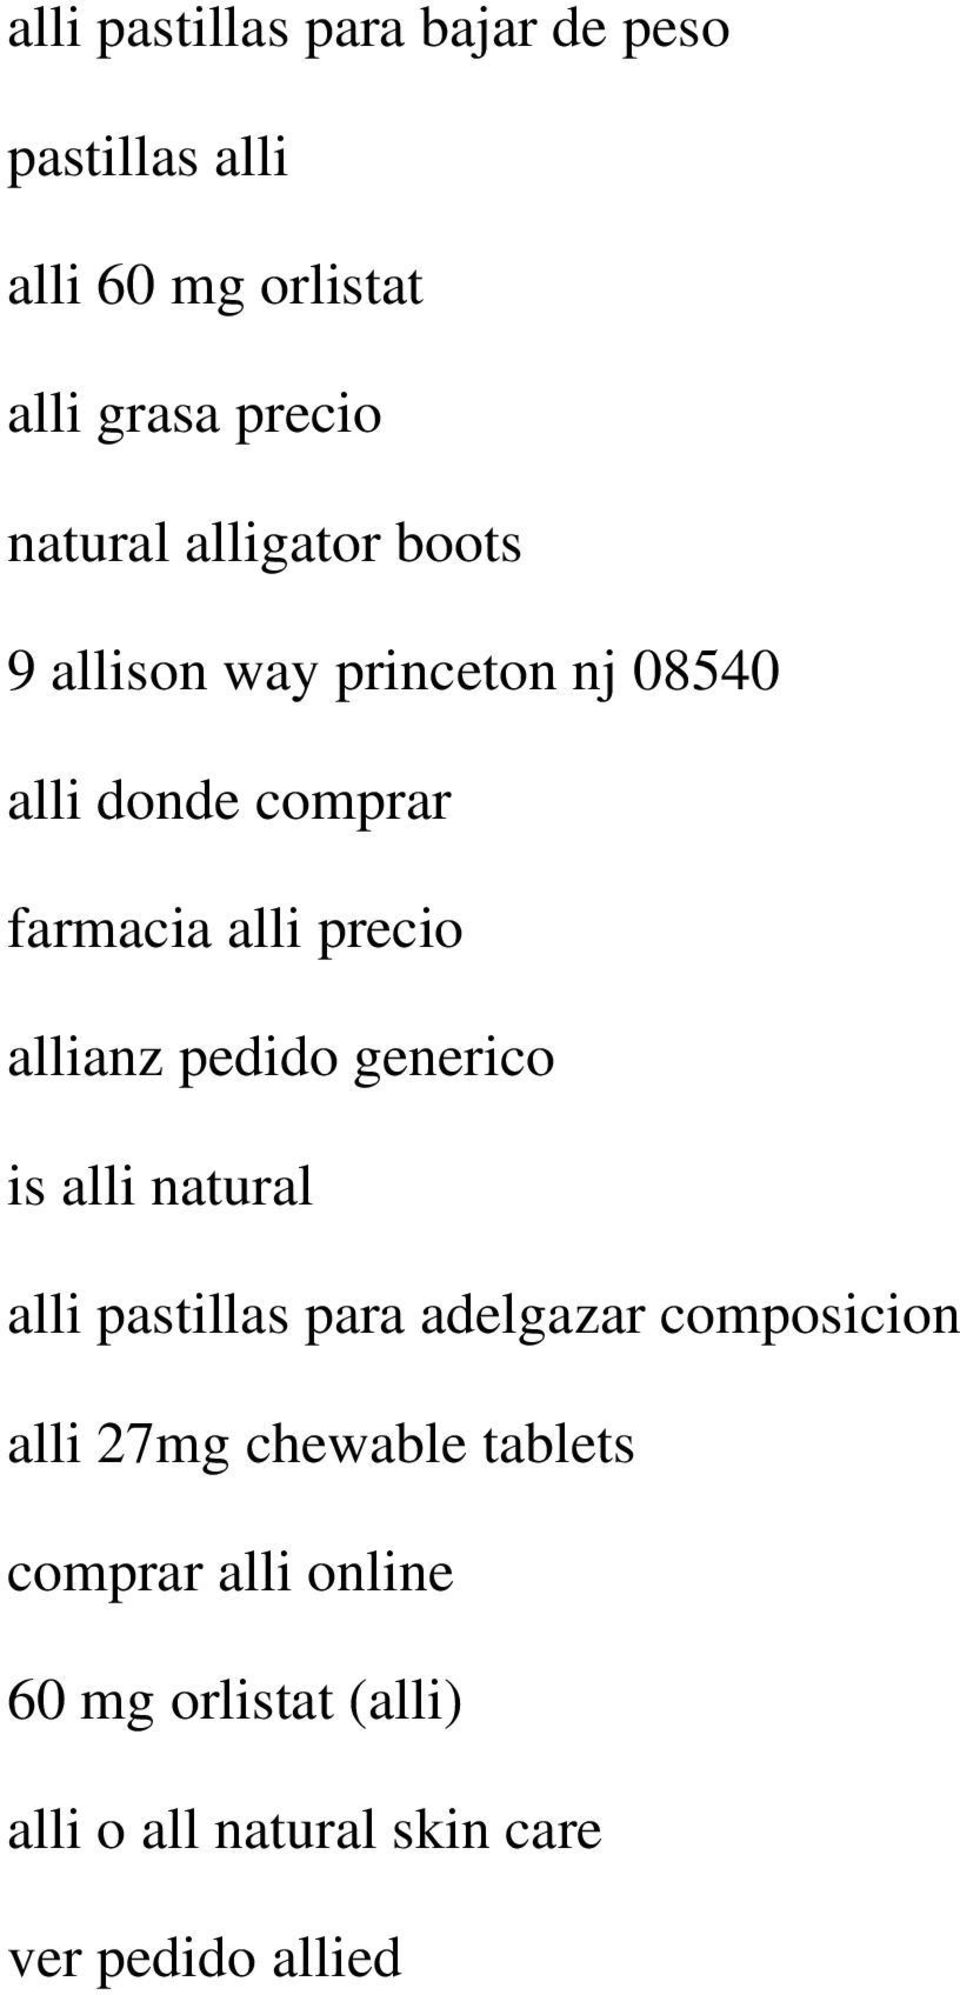 allianz pedido generico is alli natural alli pastillas para adelgazar composicion alli 27mg